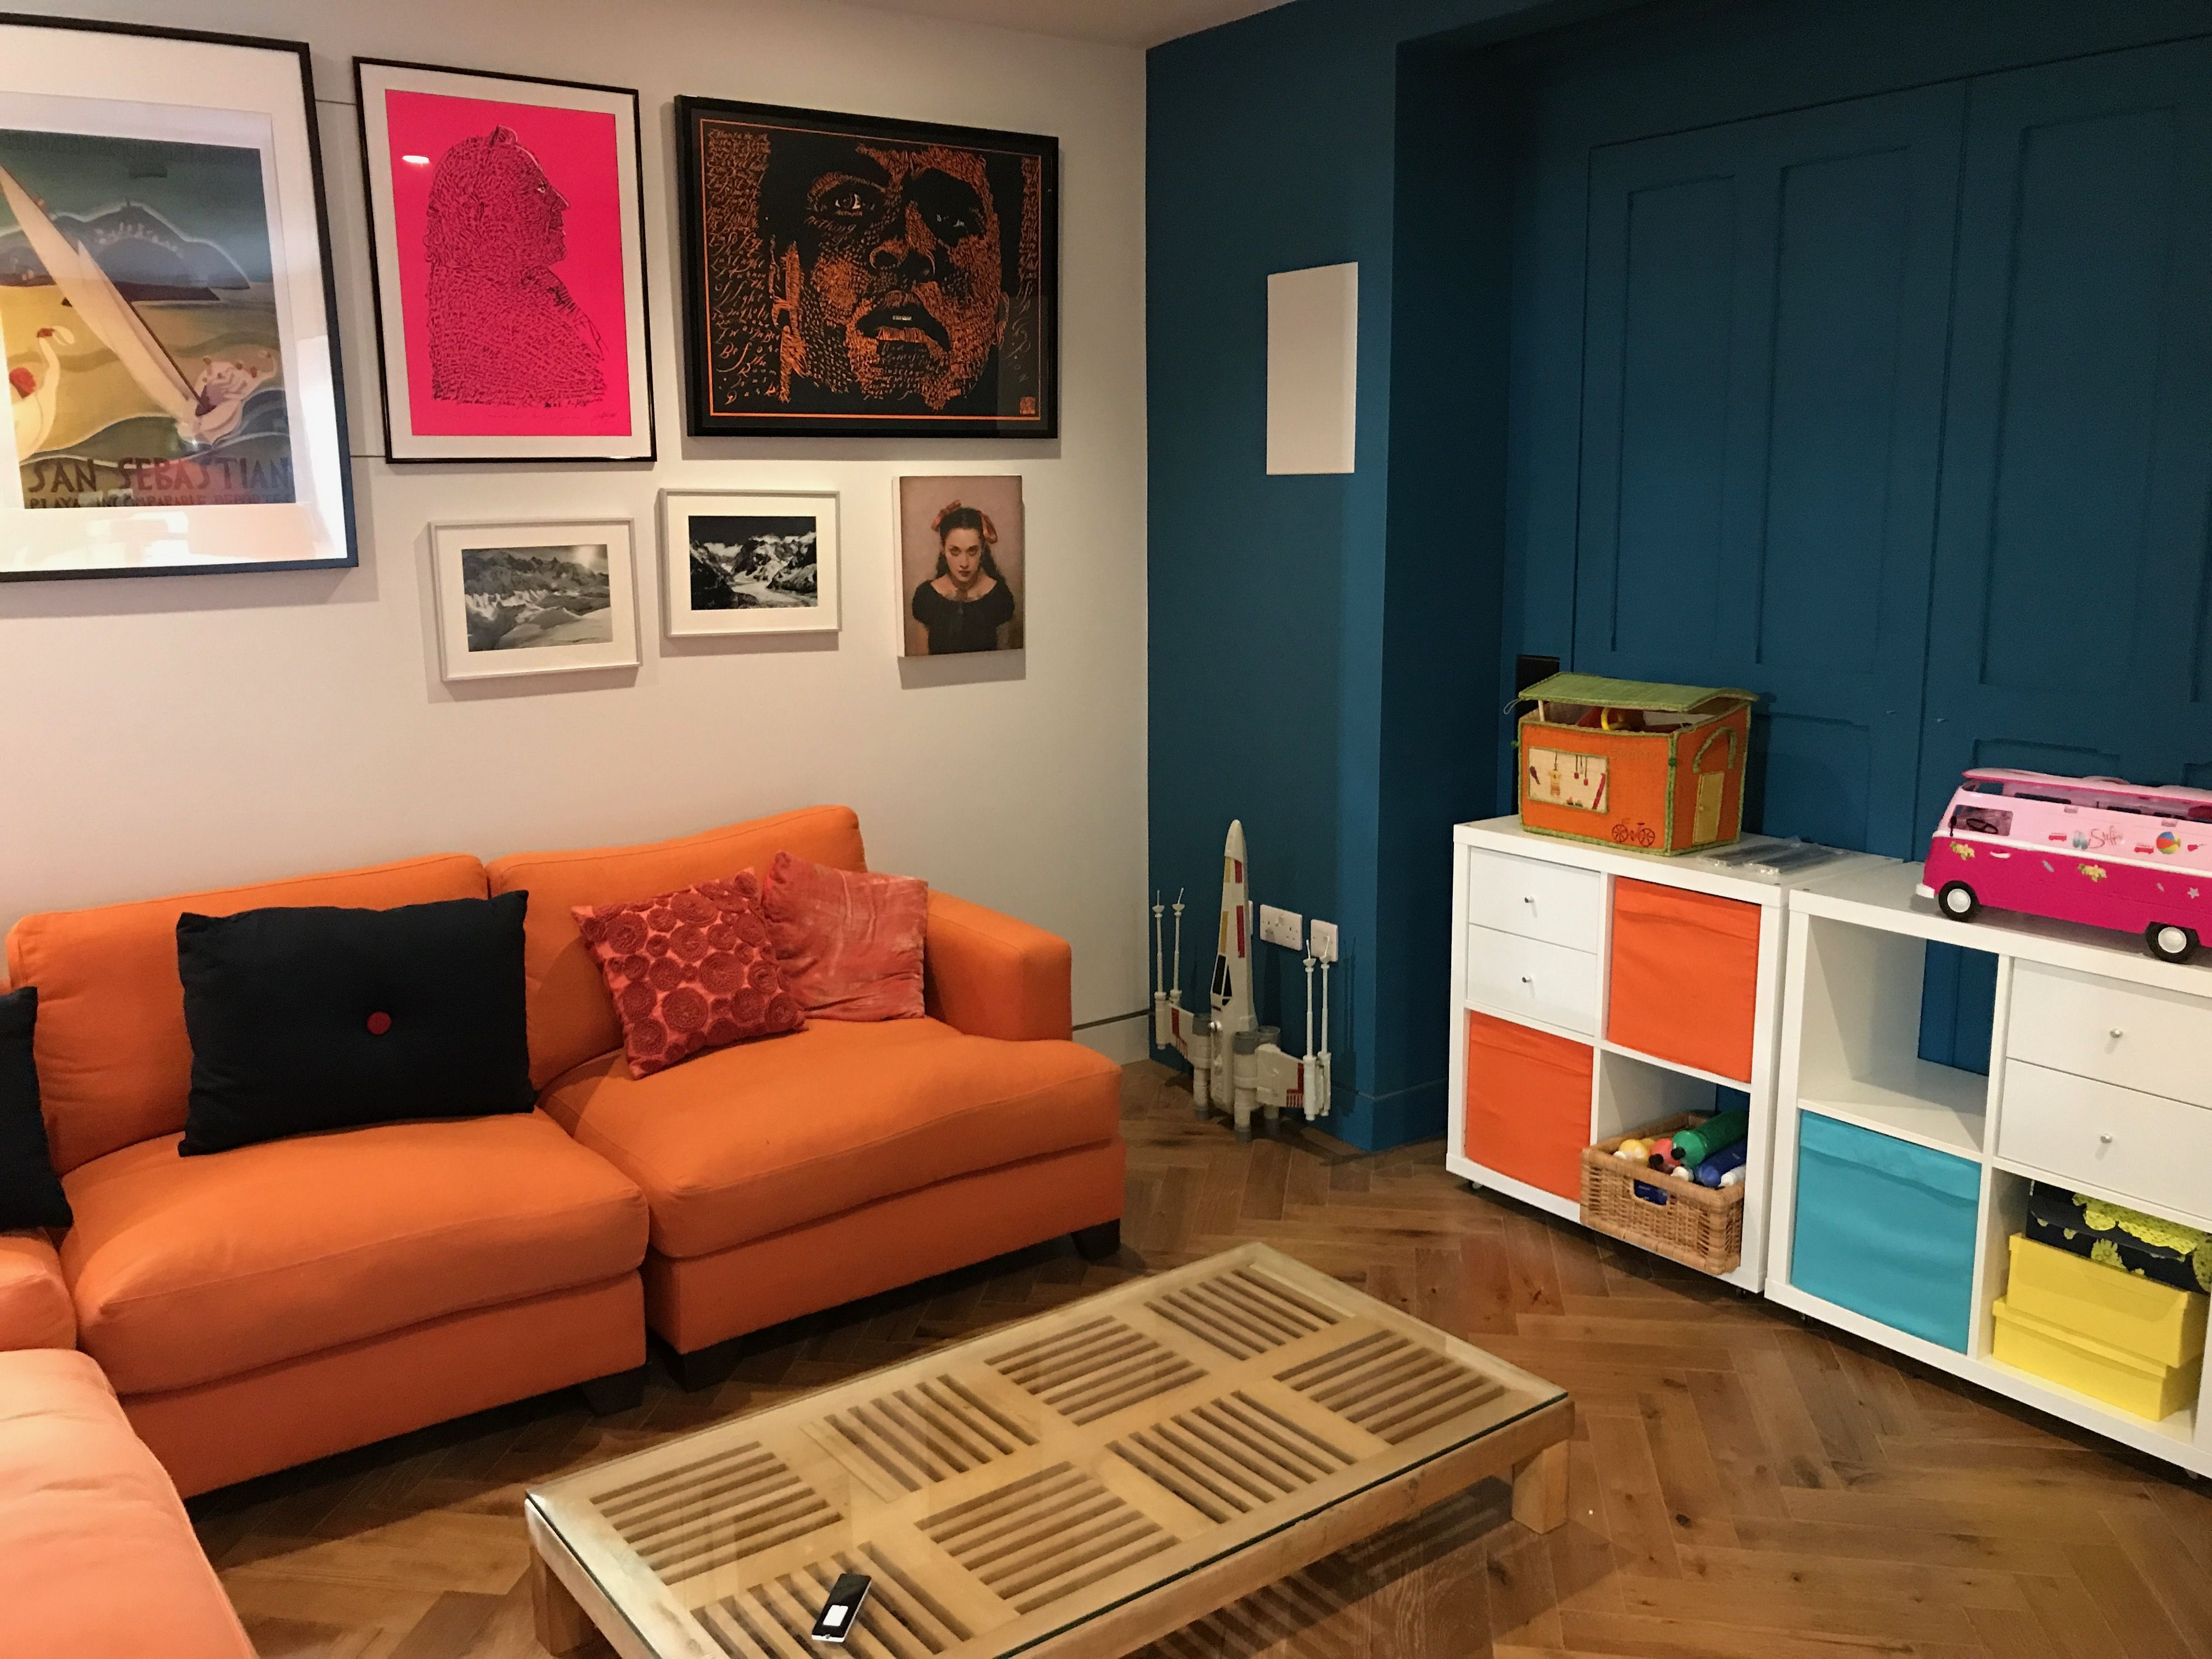 This new basement was created for a new playroom that